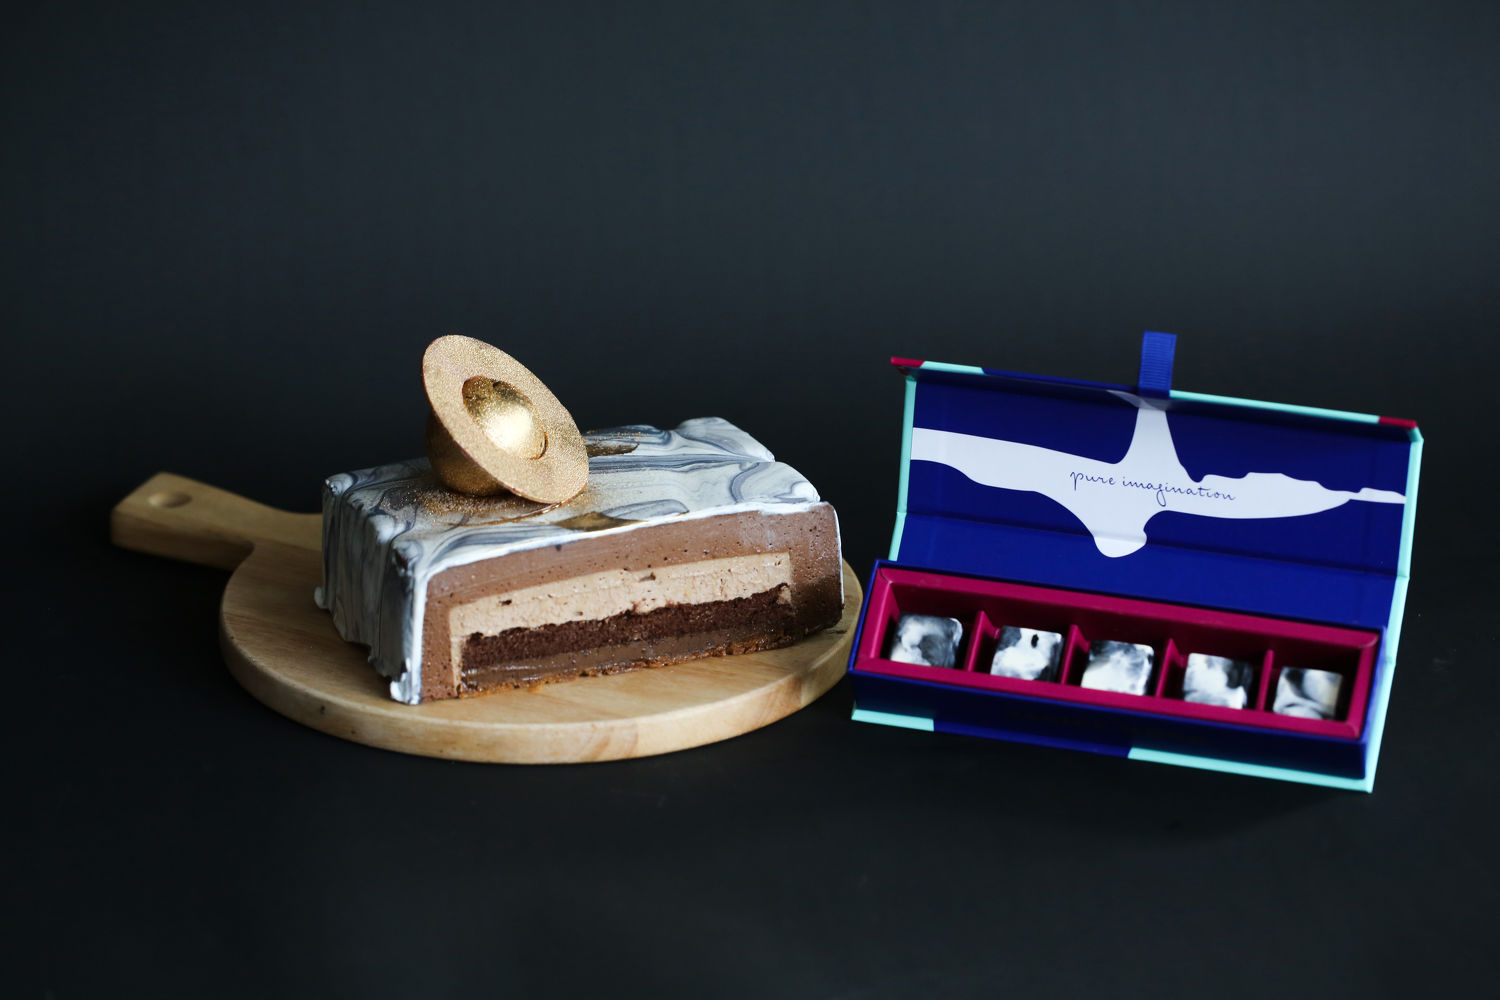 Father-s-Day-Celebration-Cake-Package-WEETS-CREDIT-JANICE-WONG-SINGAPORE - THE EDGE SINGAPORE